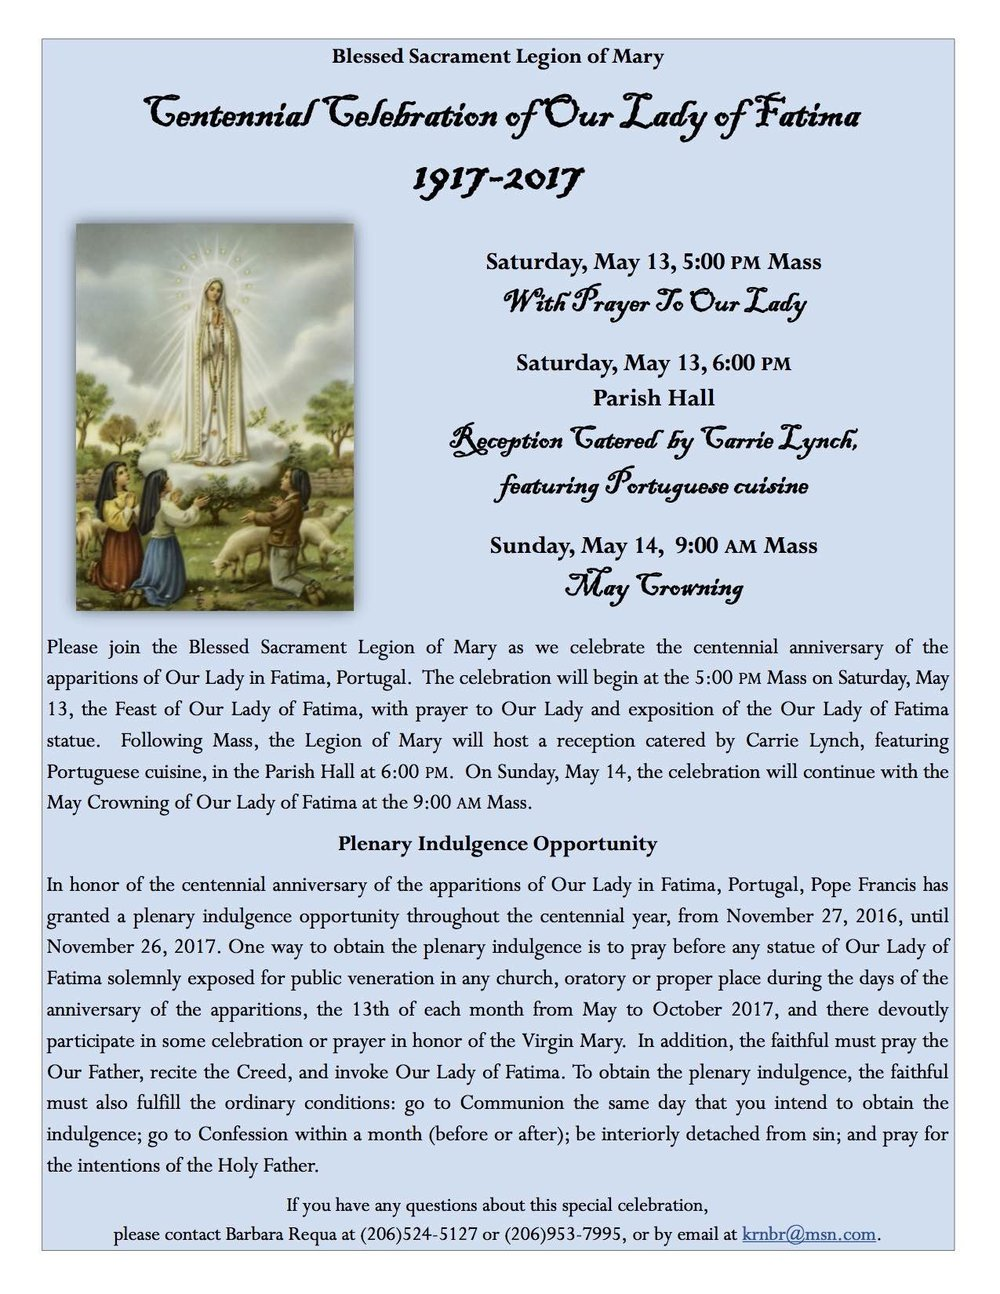 Our Lady of Fatima flyer.jpg